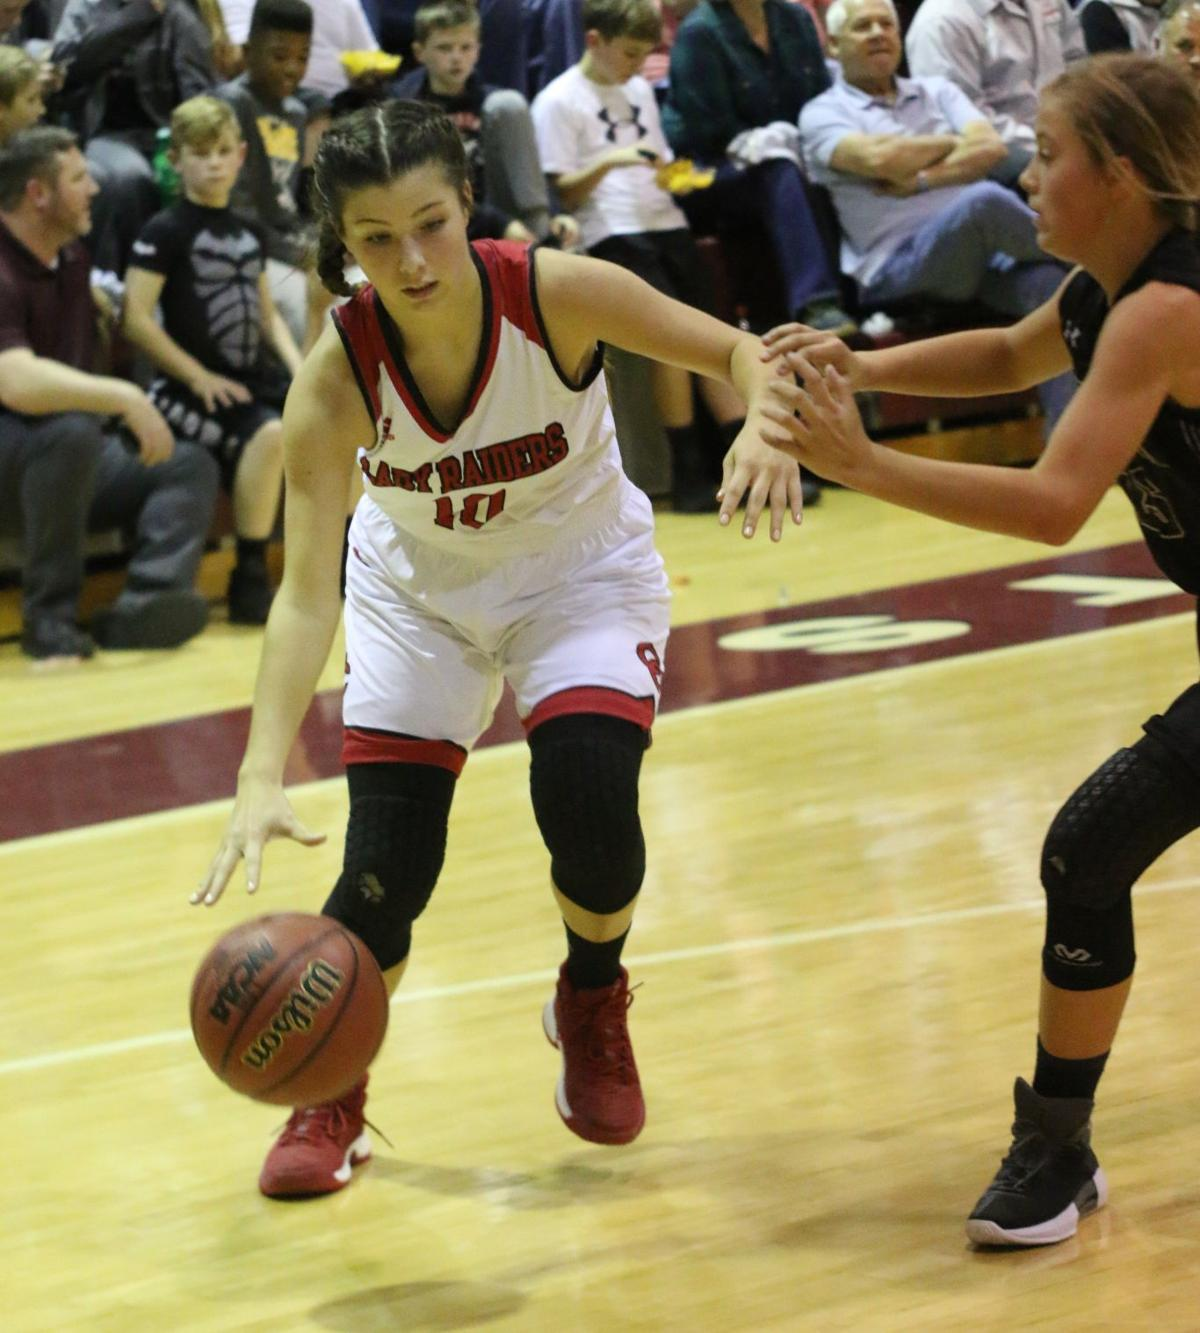 MIDDLE SCHOOL BASKETBALL: West Tullahoma sweep Red Raider hoops teams in Manchester